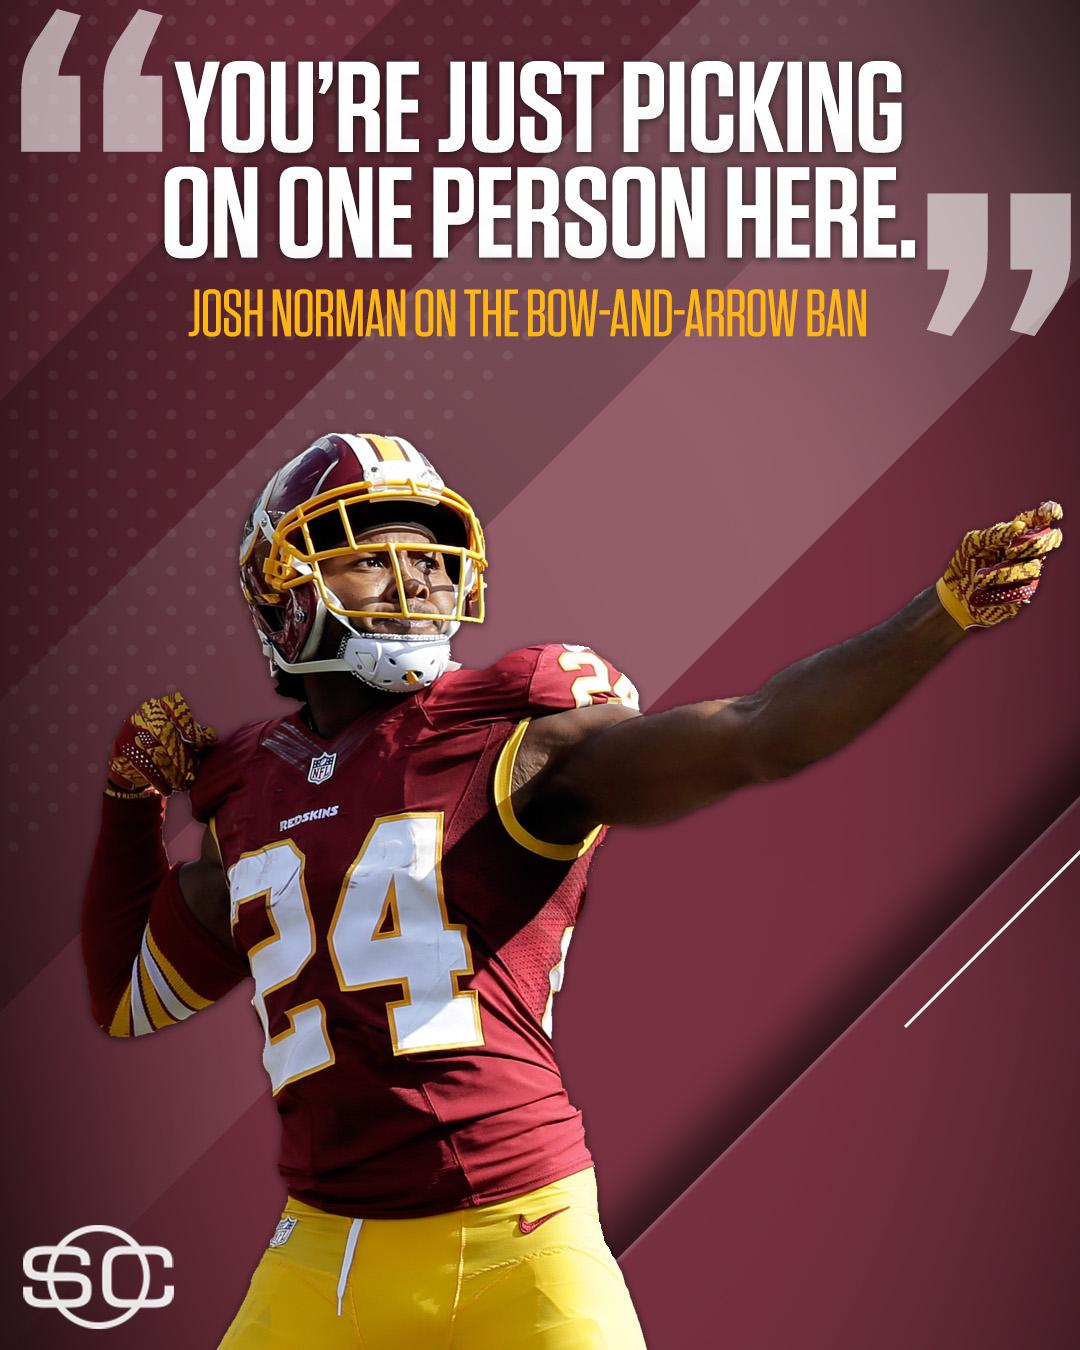 Josh Norman feels targeted by the NFL's bow-and-arrow ban. https://t.co/dxglaHGS5U https://t.co/cgIK0dZZn8